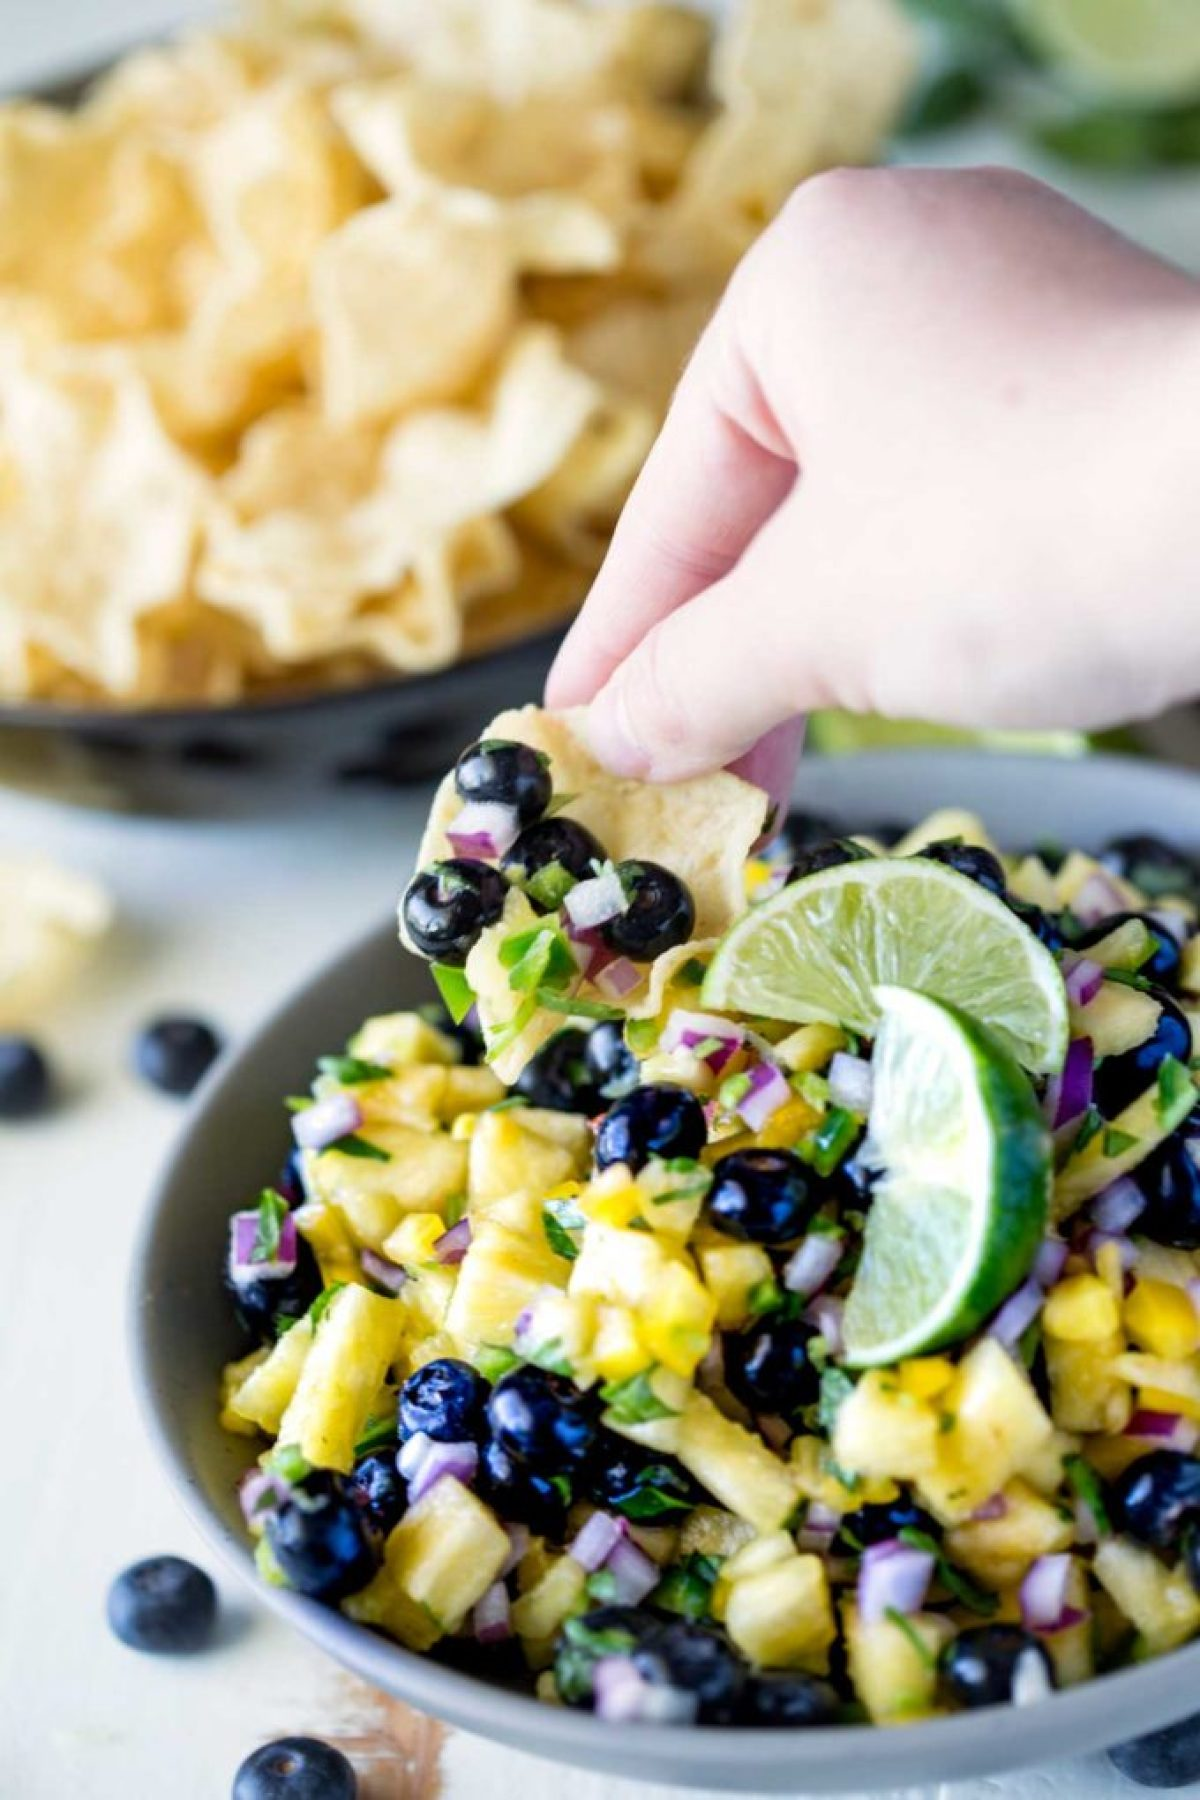 Chips and blueberry pineapple fruit salsa